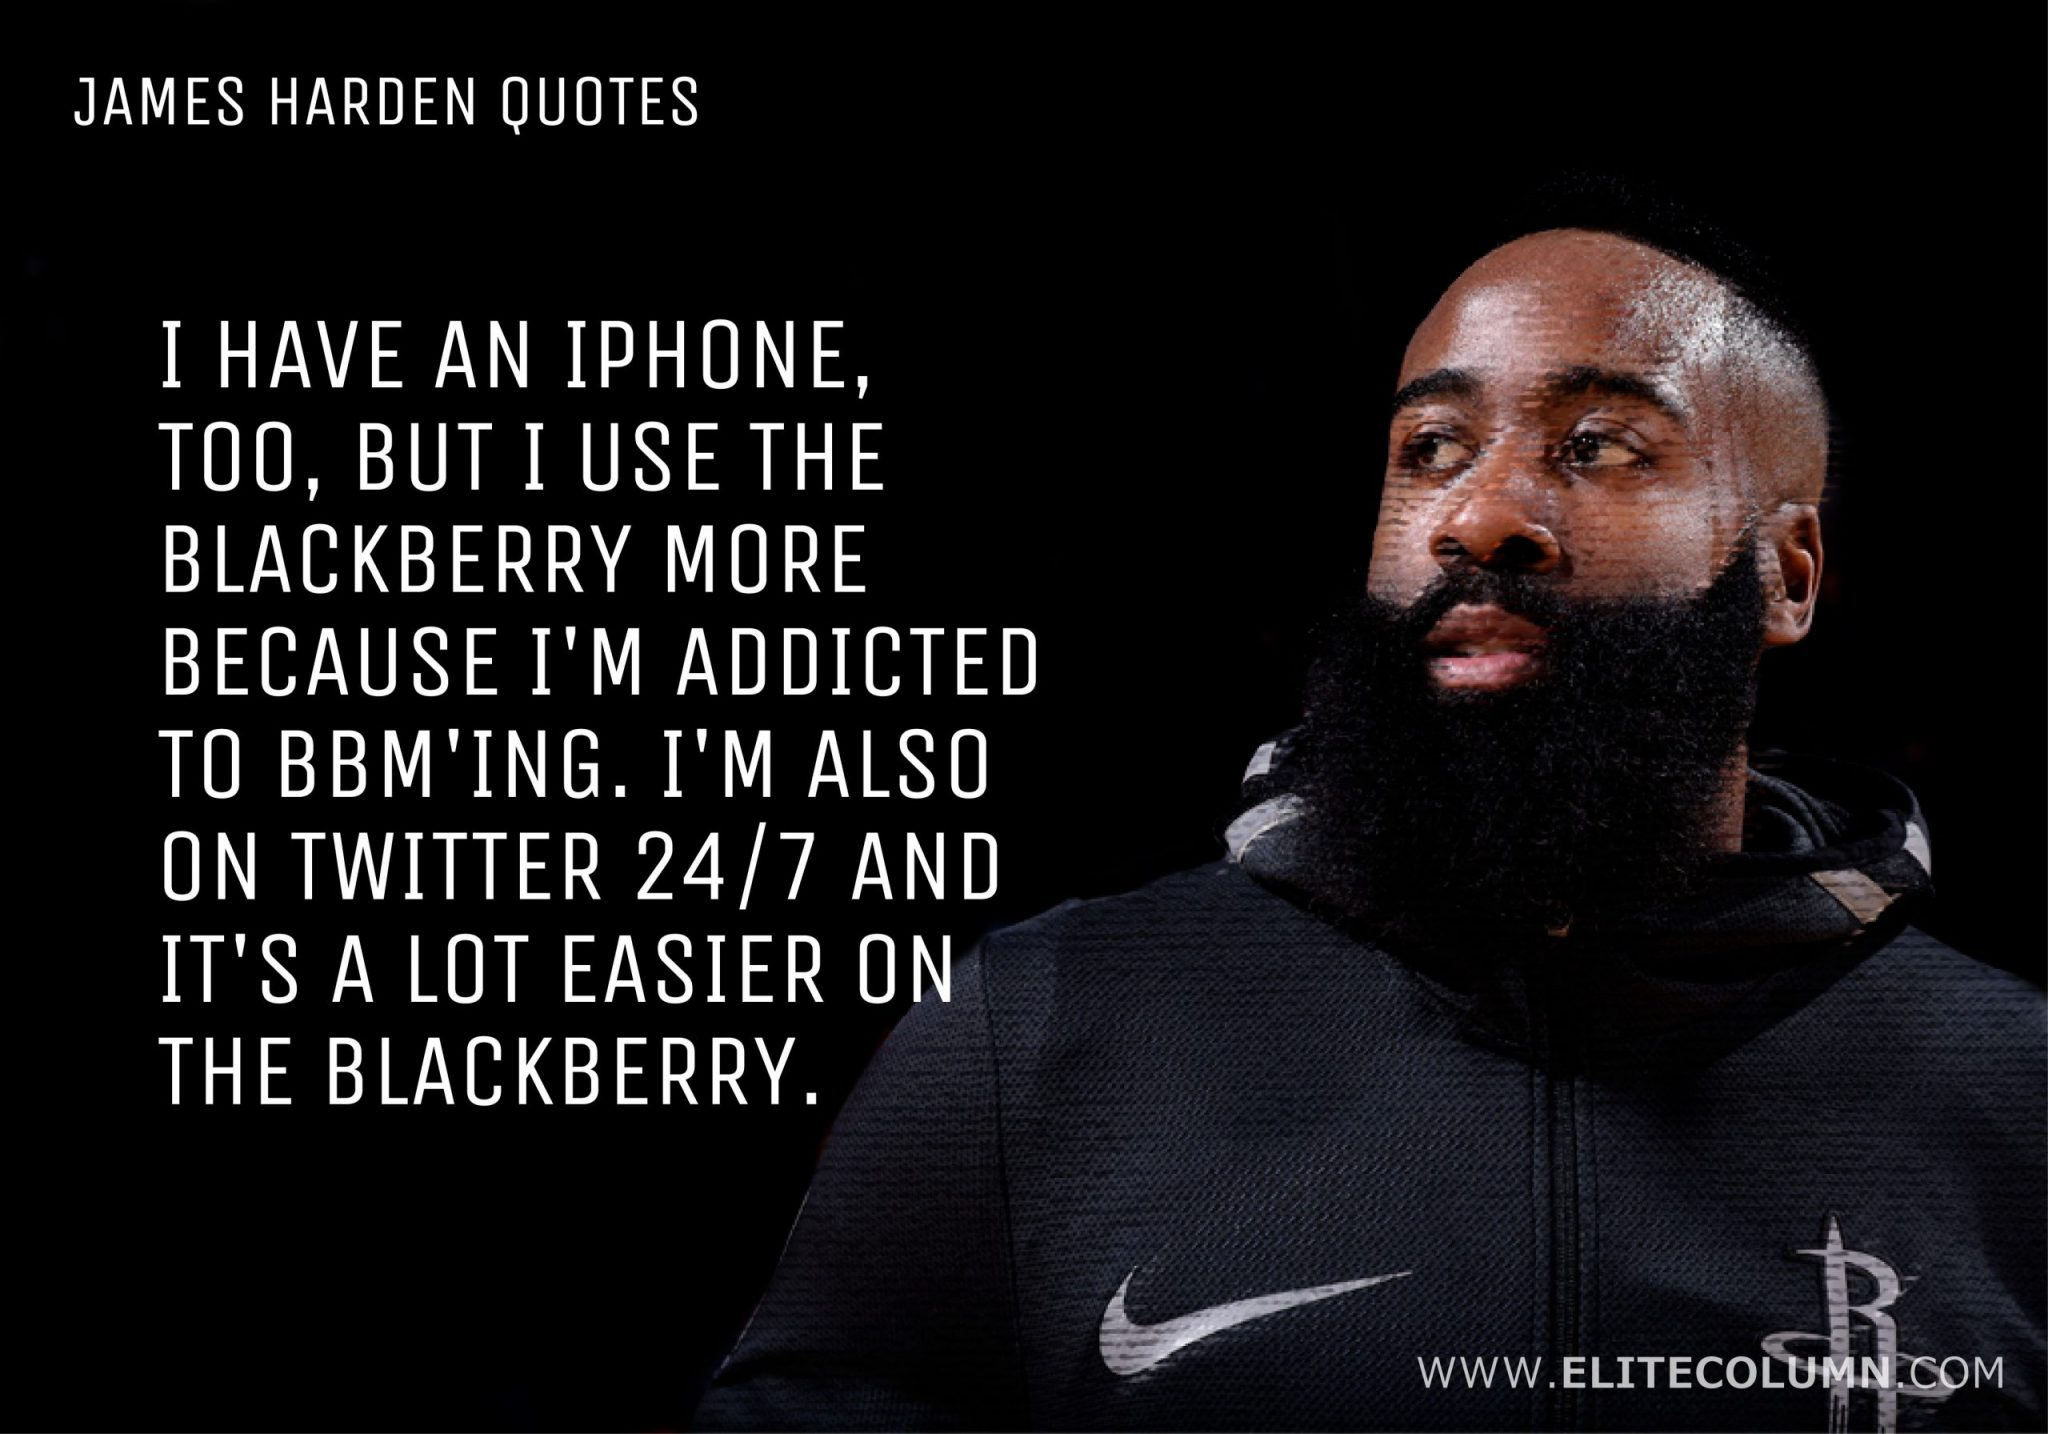 James Harden Quotes (7)